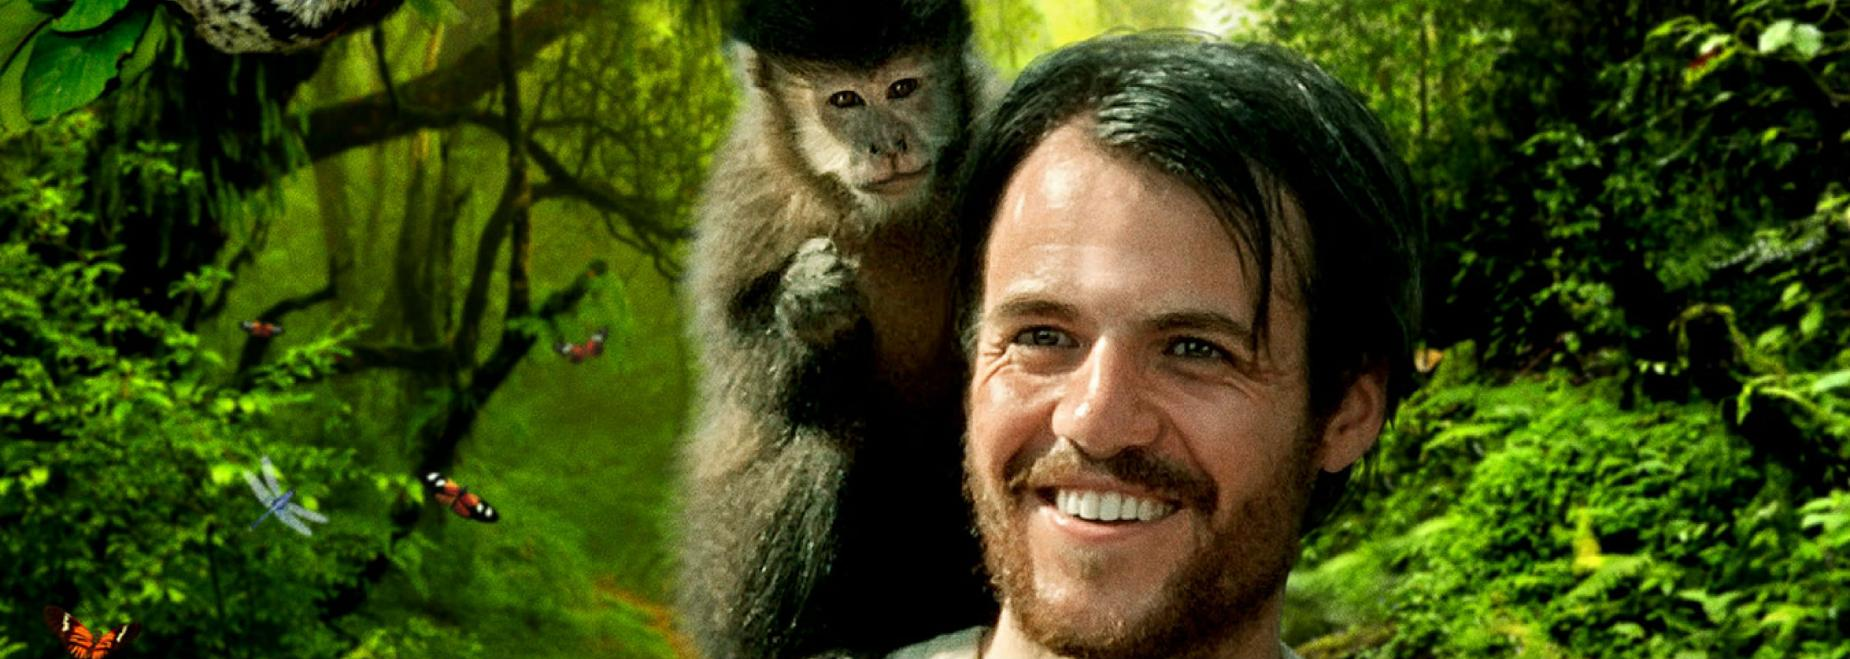 A still from the film showing Henry Bates in the jungle with a monkey on his shoulder